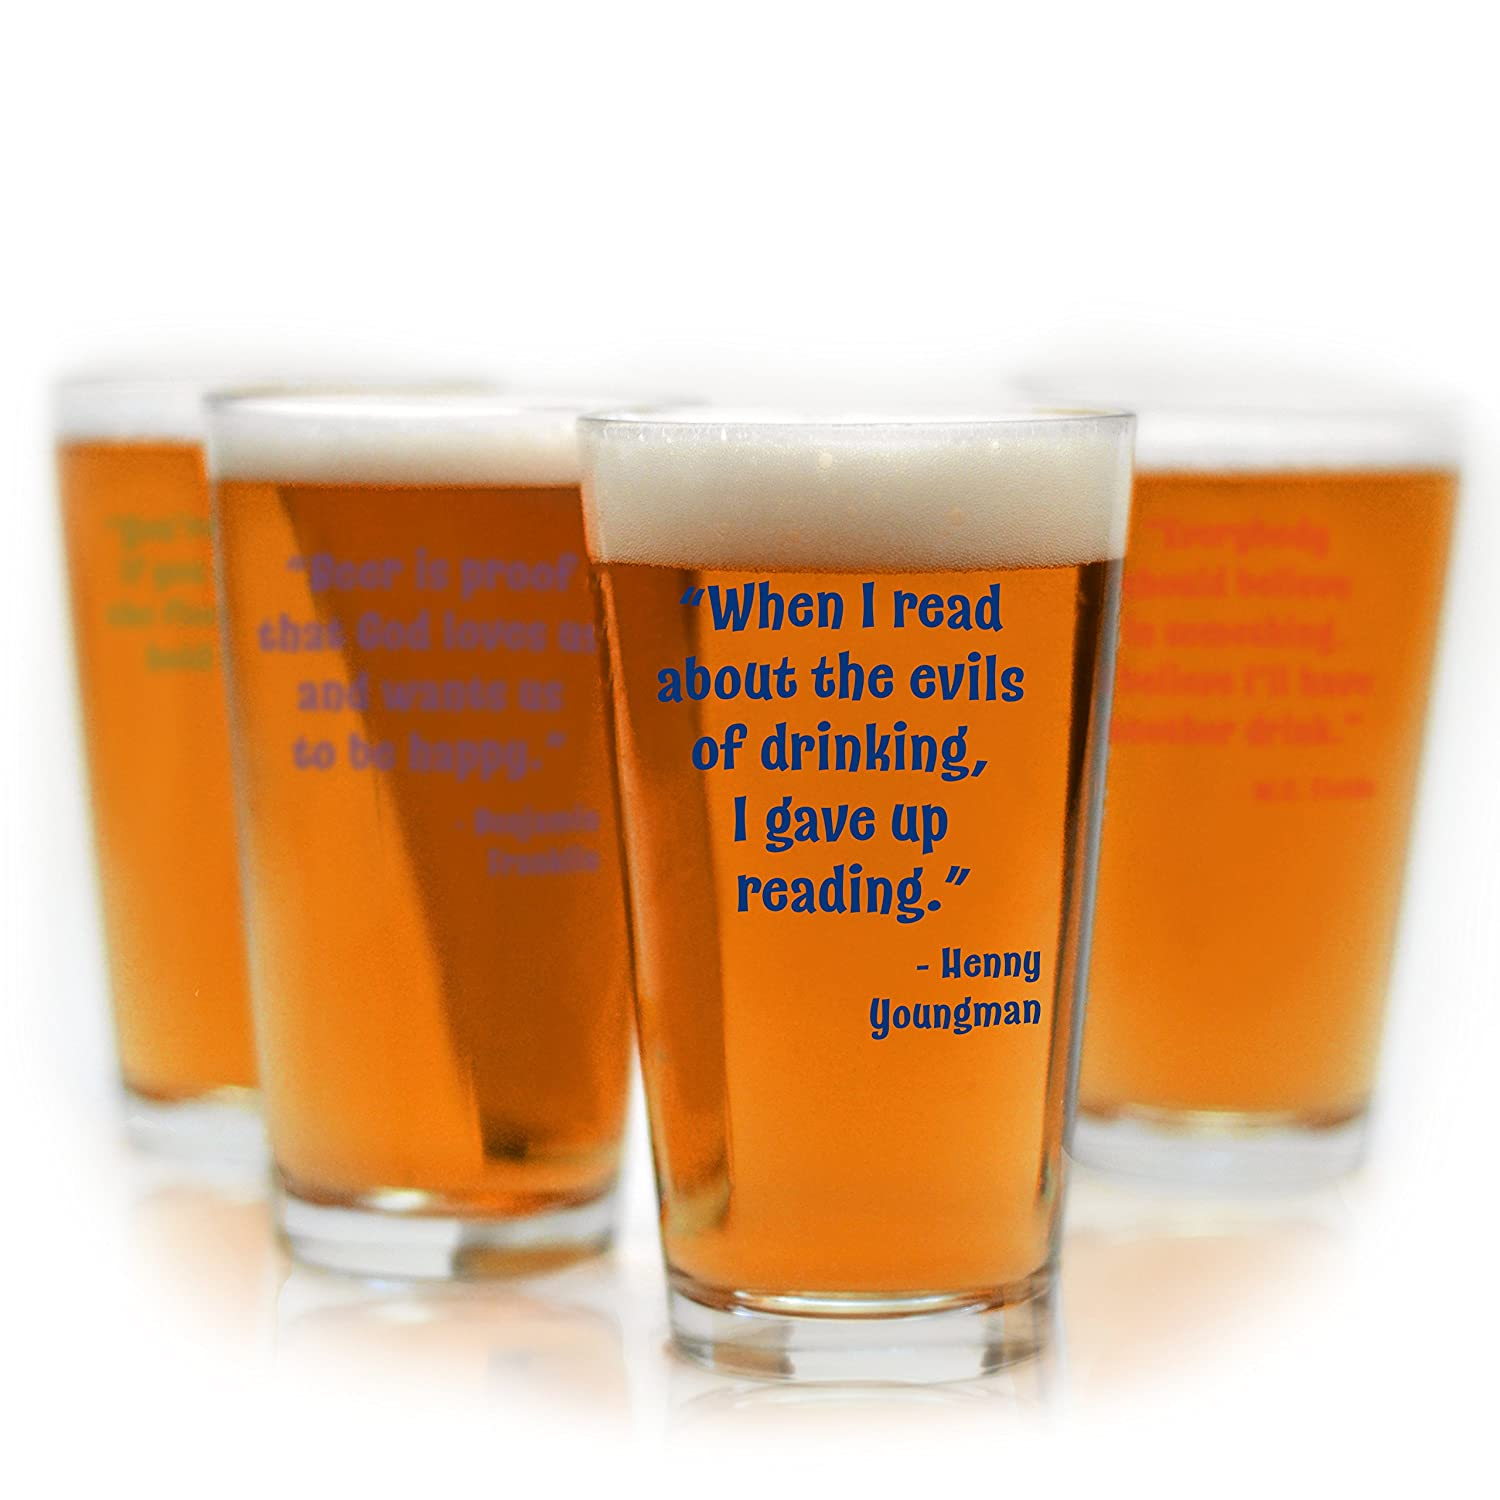 Funny Beer Quote Pint Glasses - Set of 4 Glass With a Twist